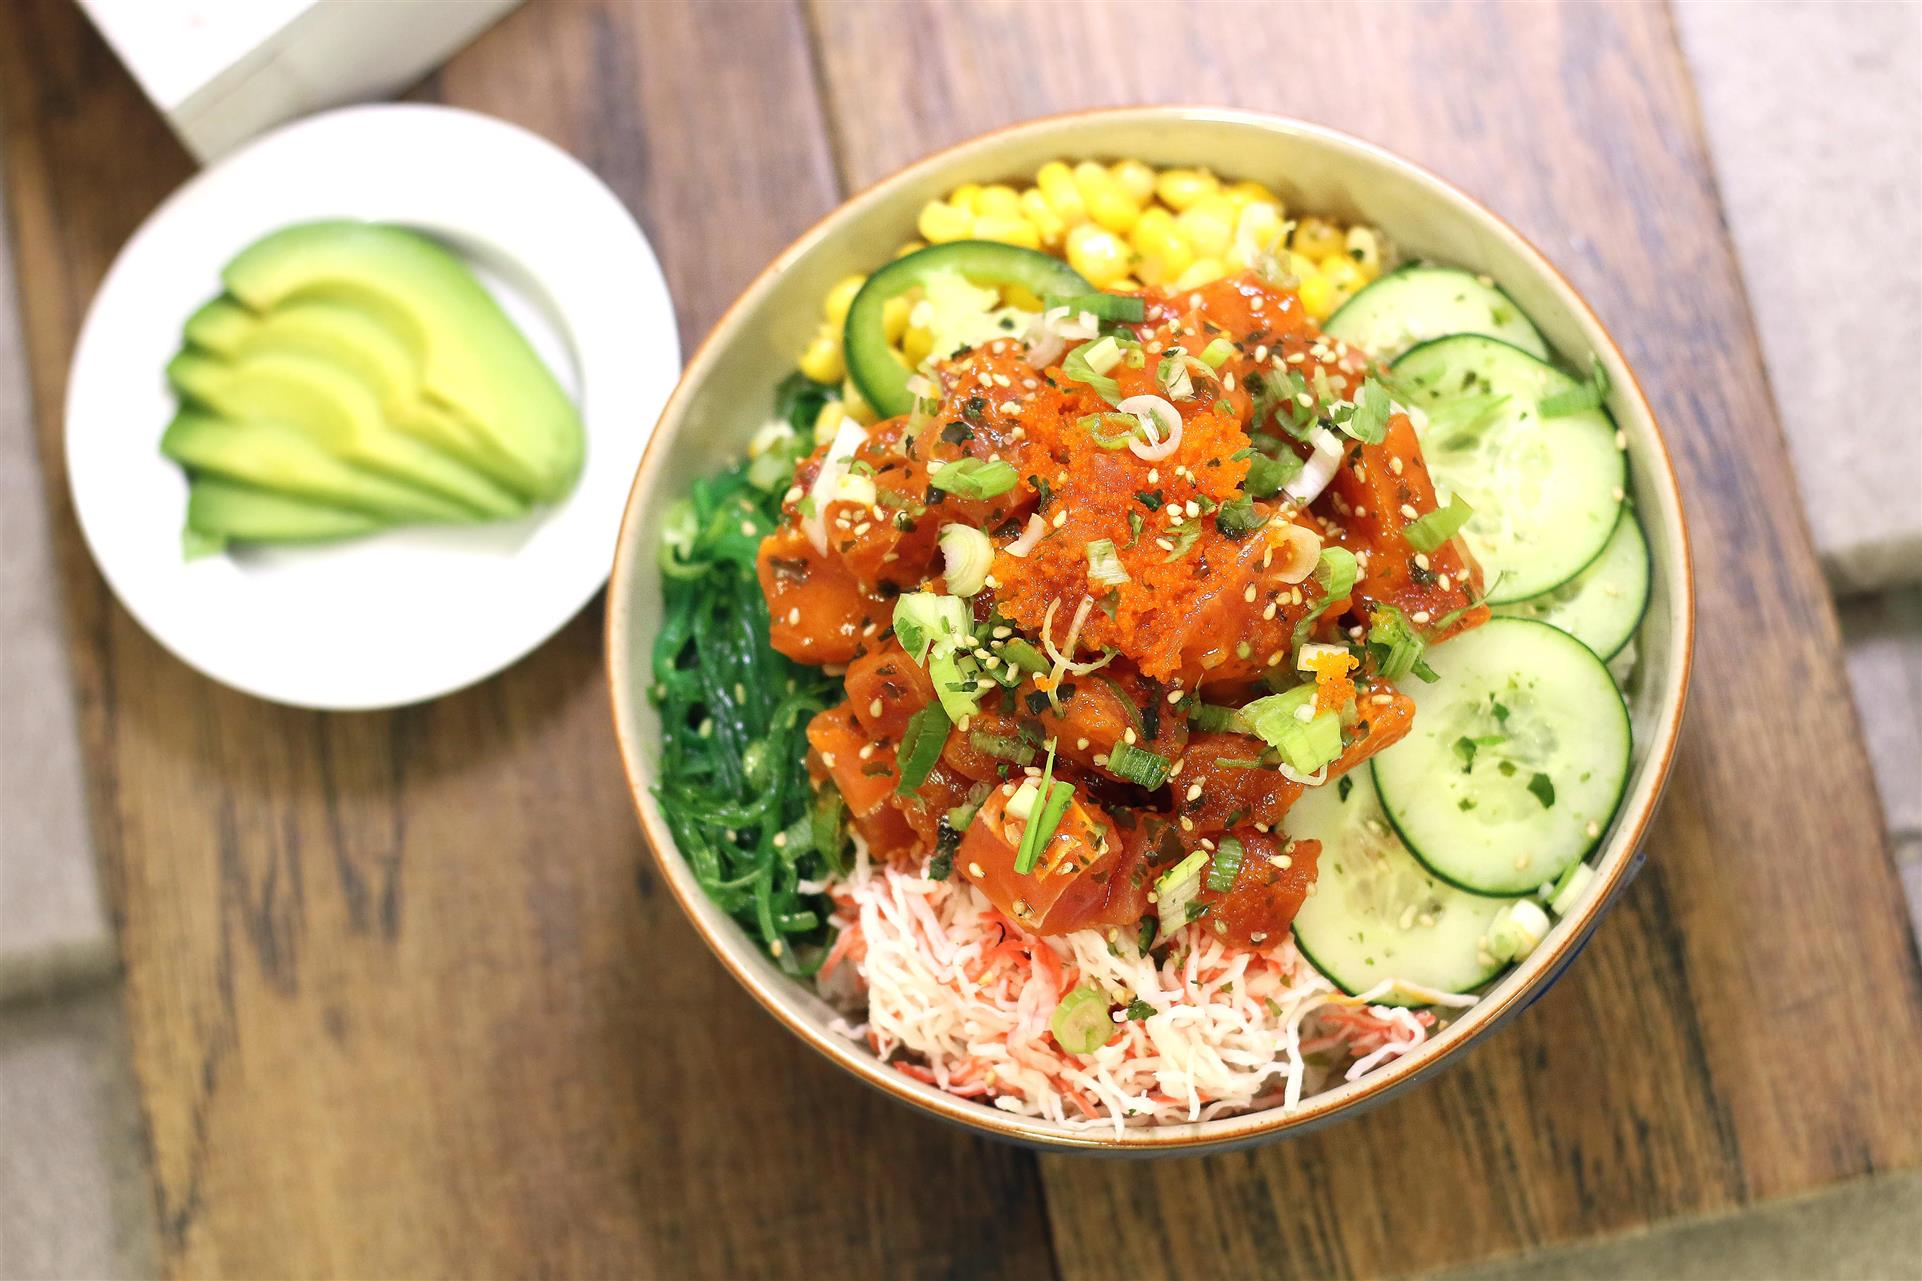 poke bowl with various ingredients, including cucumber slices and corn, with side plate of avocados